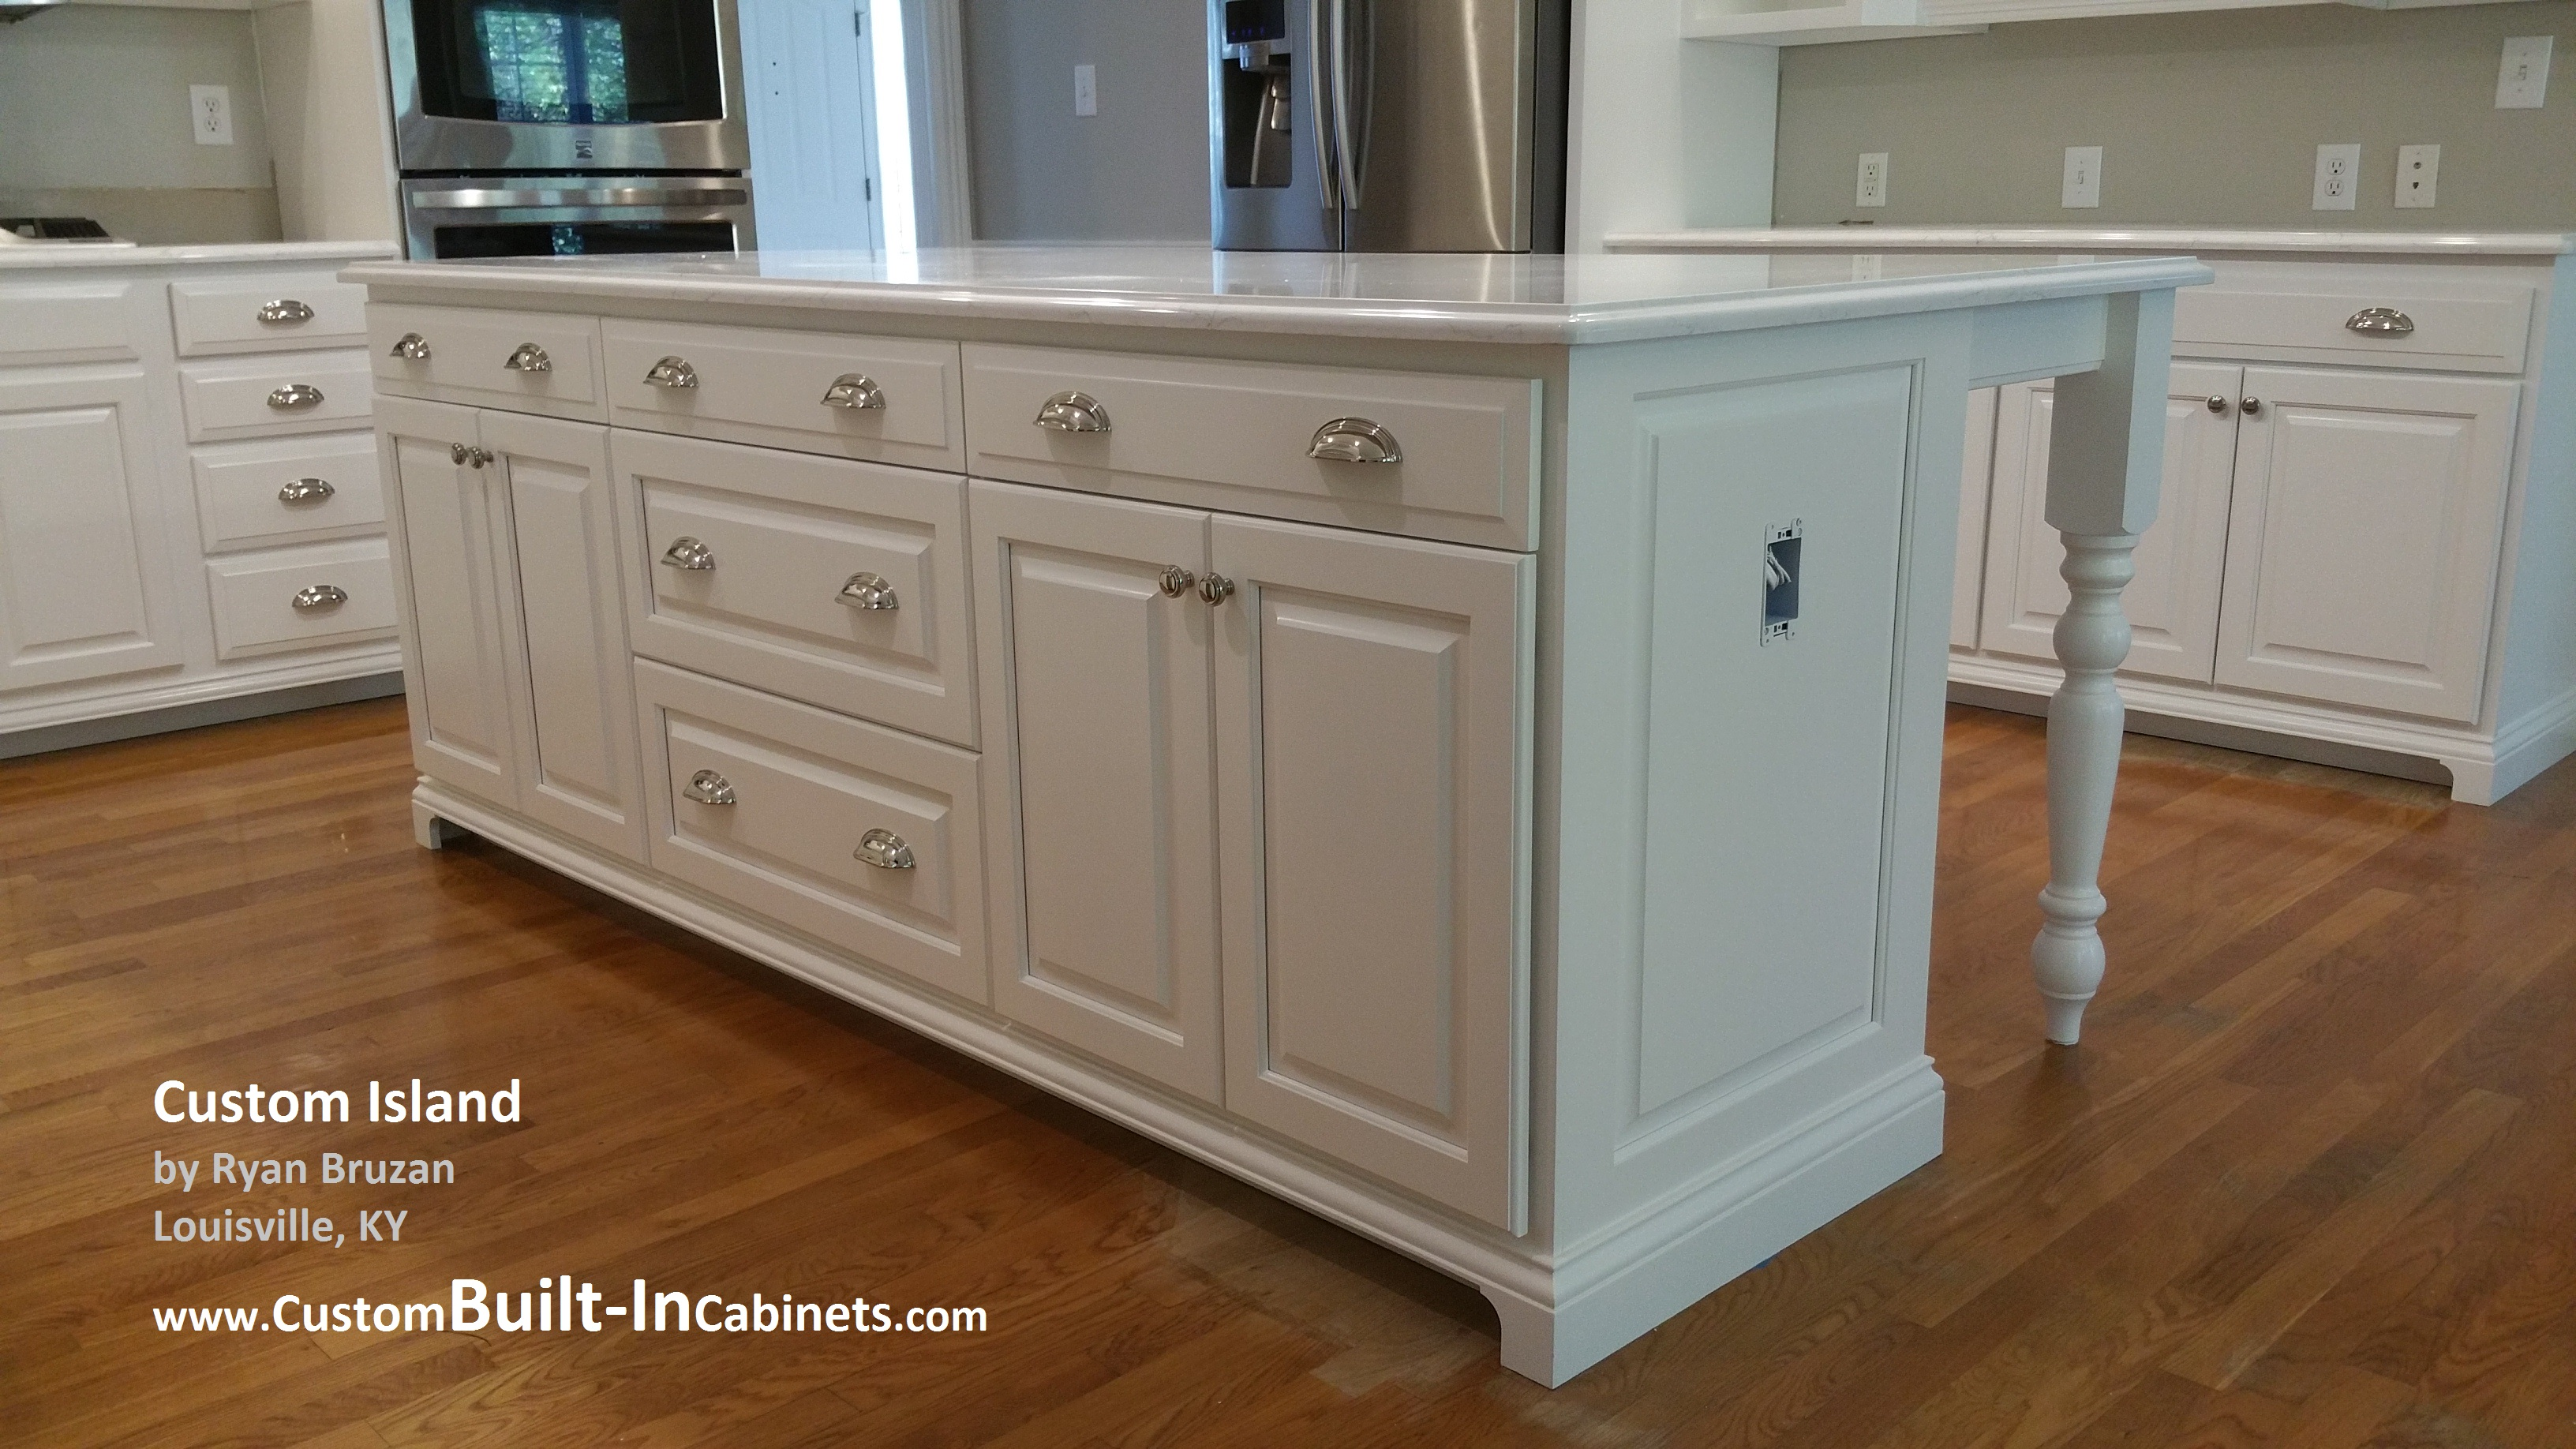 Custom BuiltIn Cabinet Services around Louisville KY